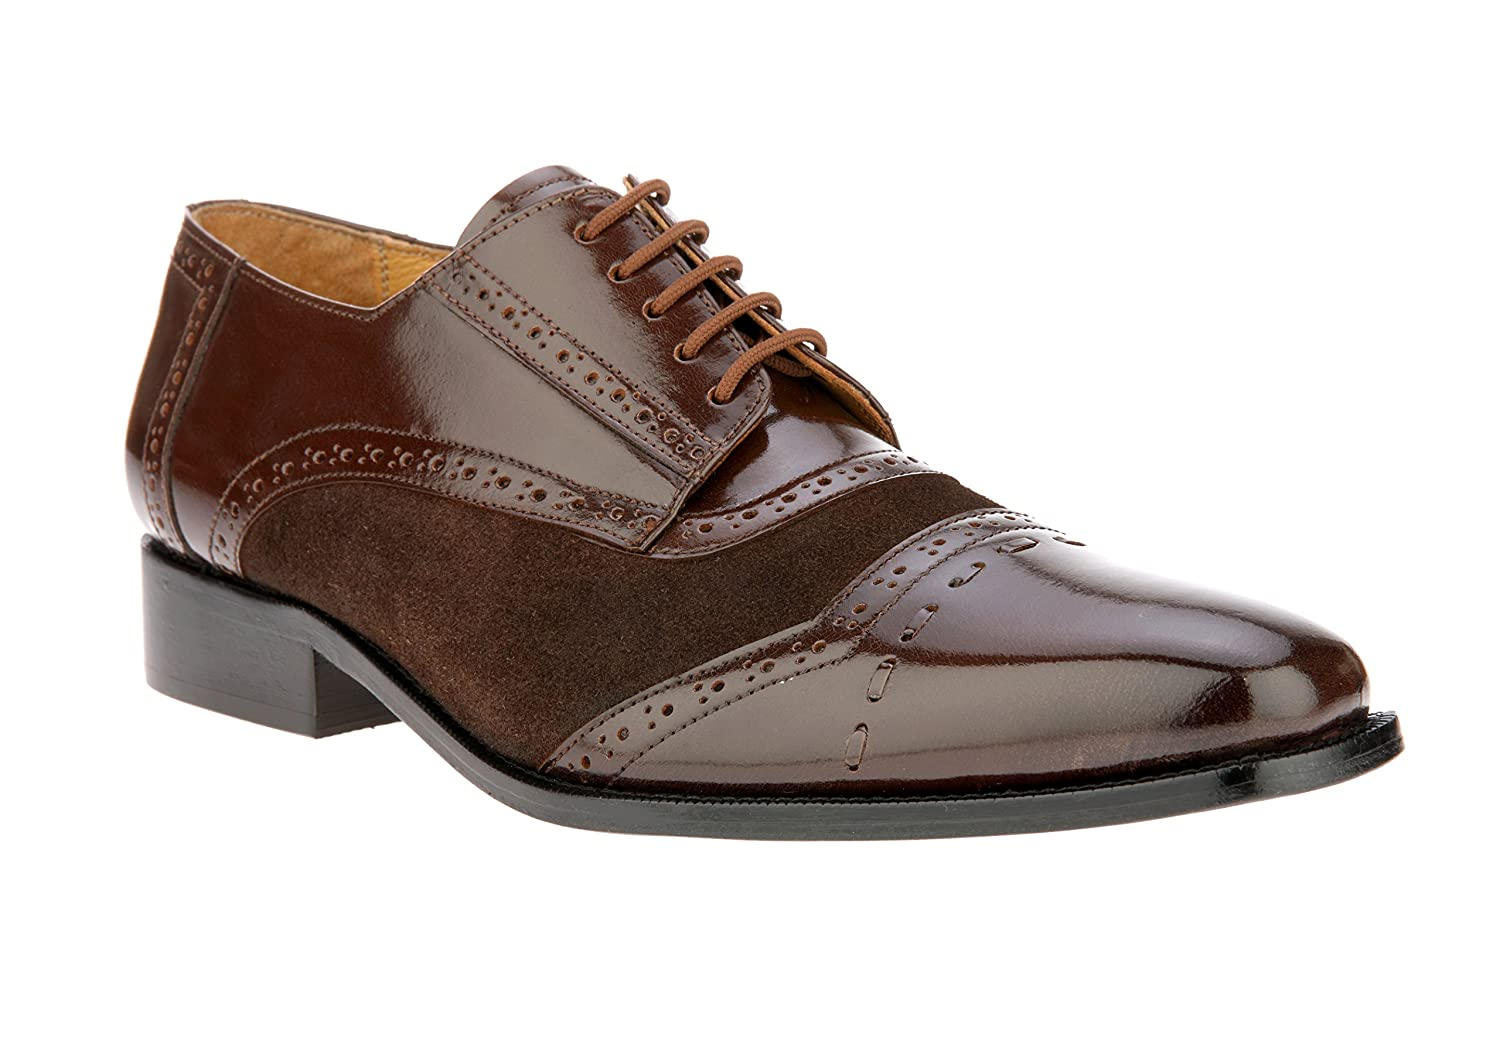 383b28a40ccb6 Liberty Men's Handmade Leather Oxford Plain Toe Suede Comfort Stitched Lace  Up Dress Shoes